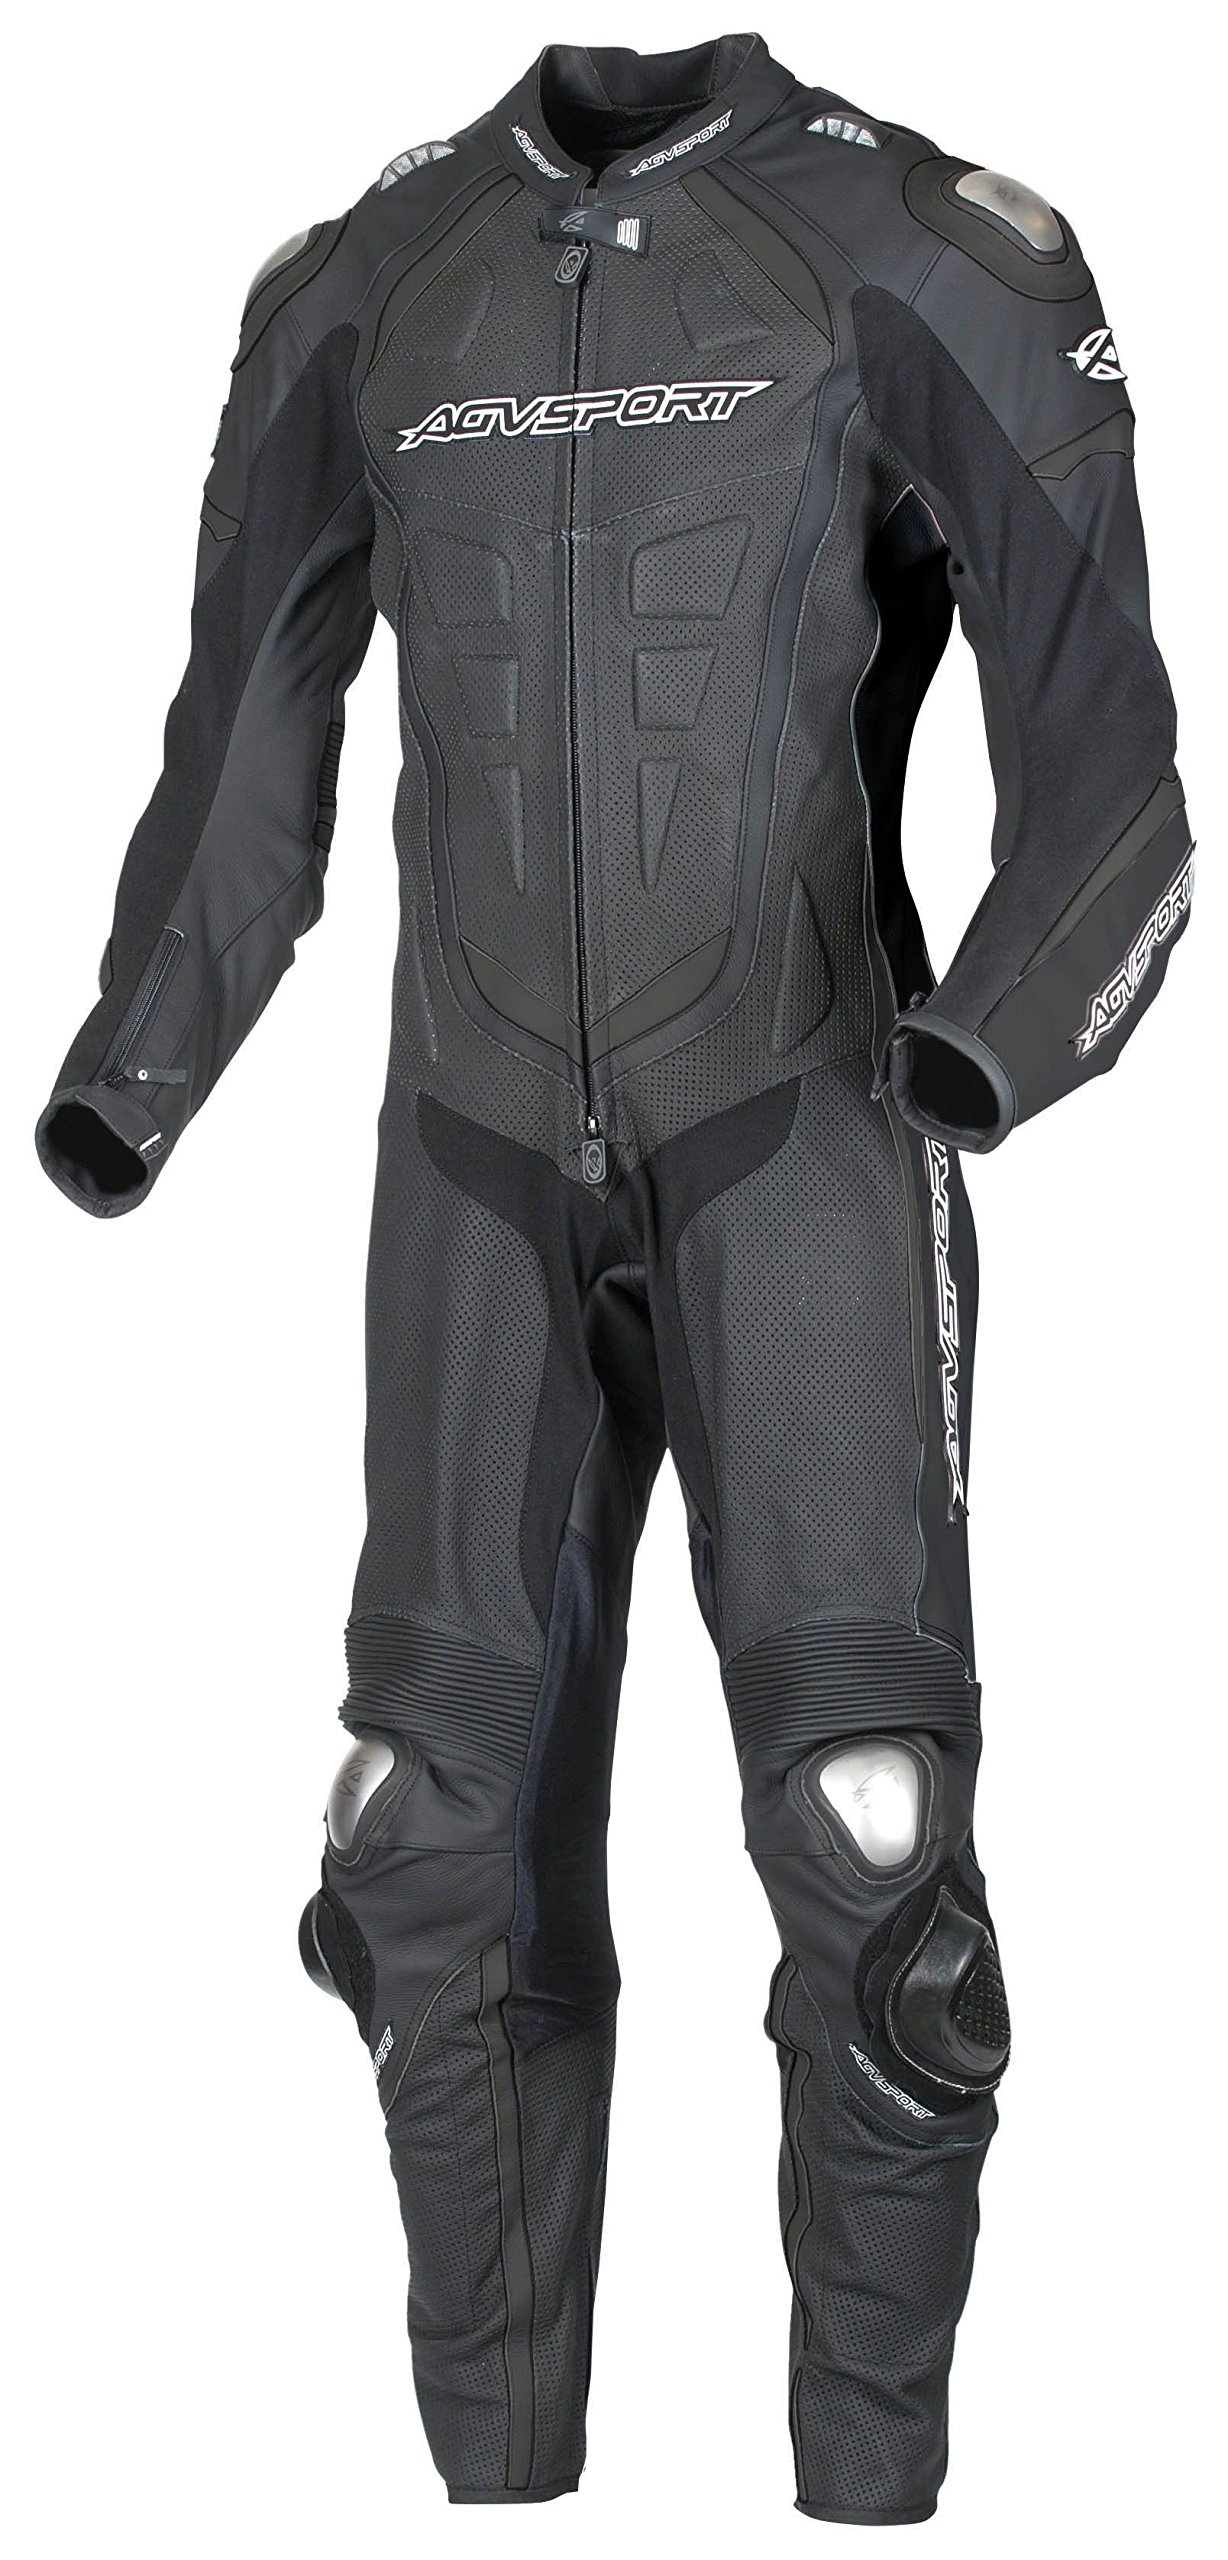 AGV Sport 1-Piece ''Podium'' Leather Race Suit (Black) - Size 48 US / 58 EU by AGV SPORT MOTORCYCLE LEATHERS (Image #1)